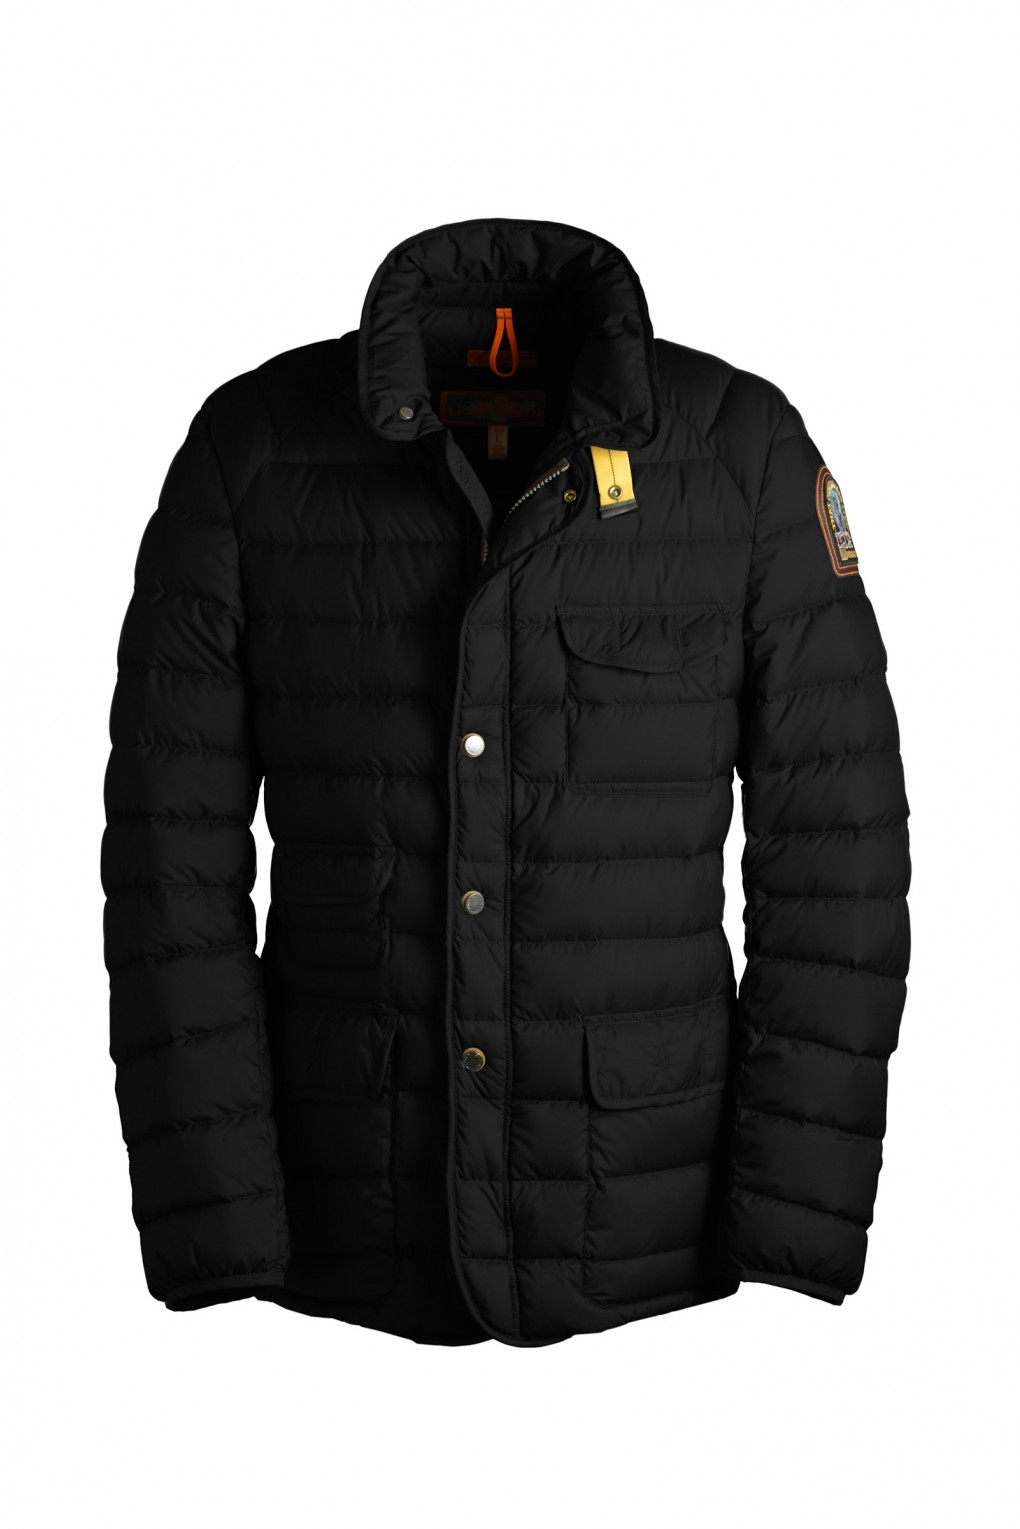 parajumpers ORSO man outerwear Black